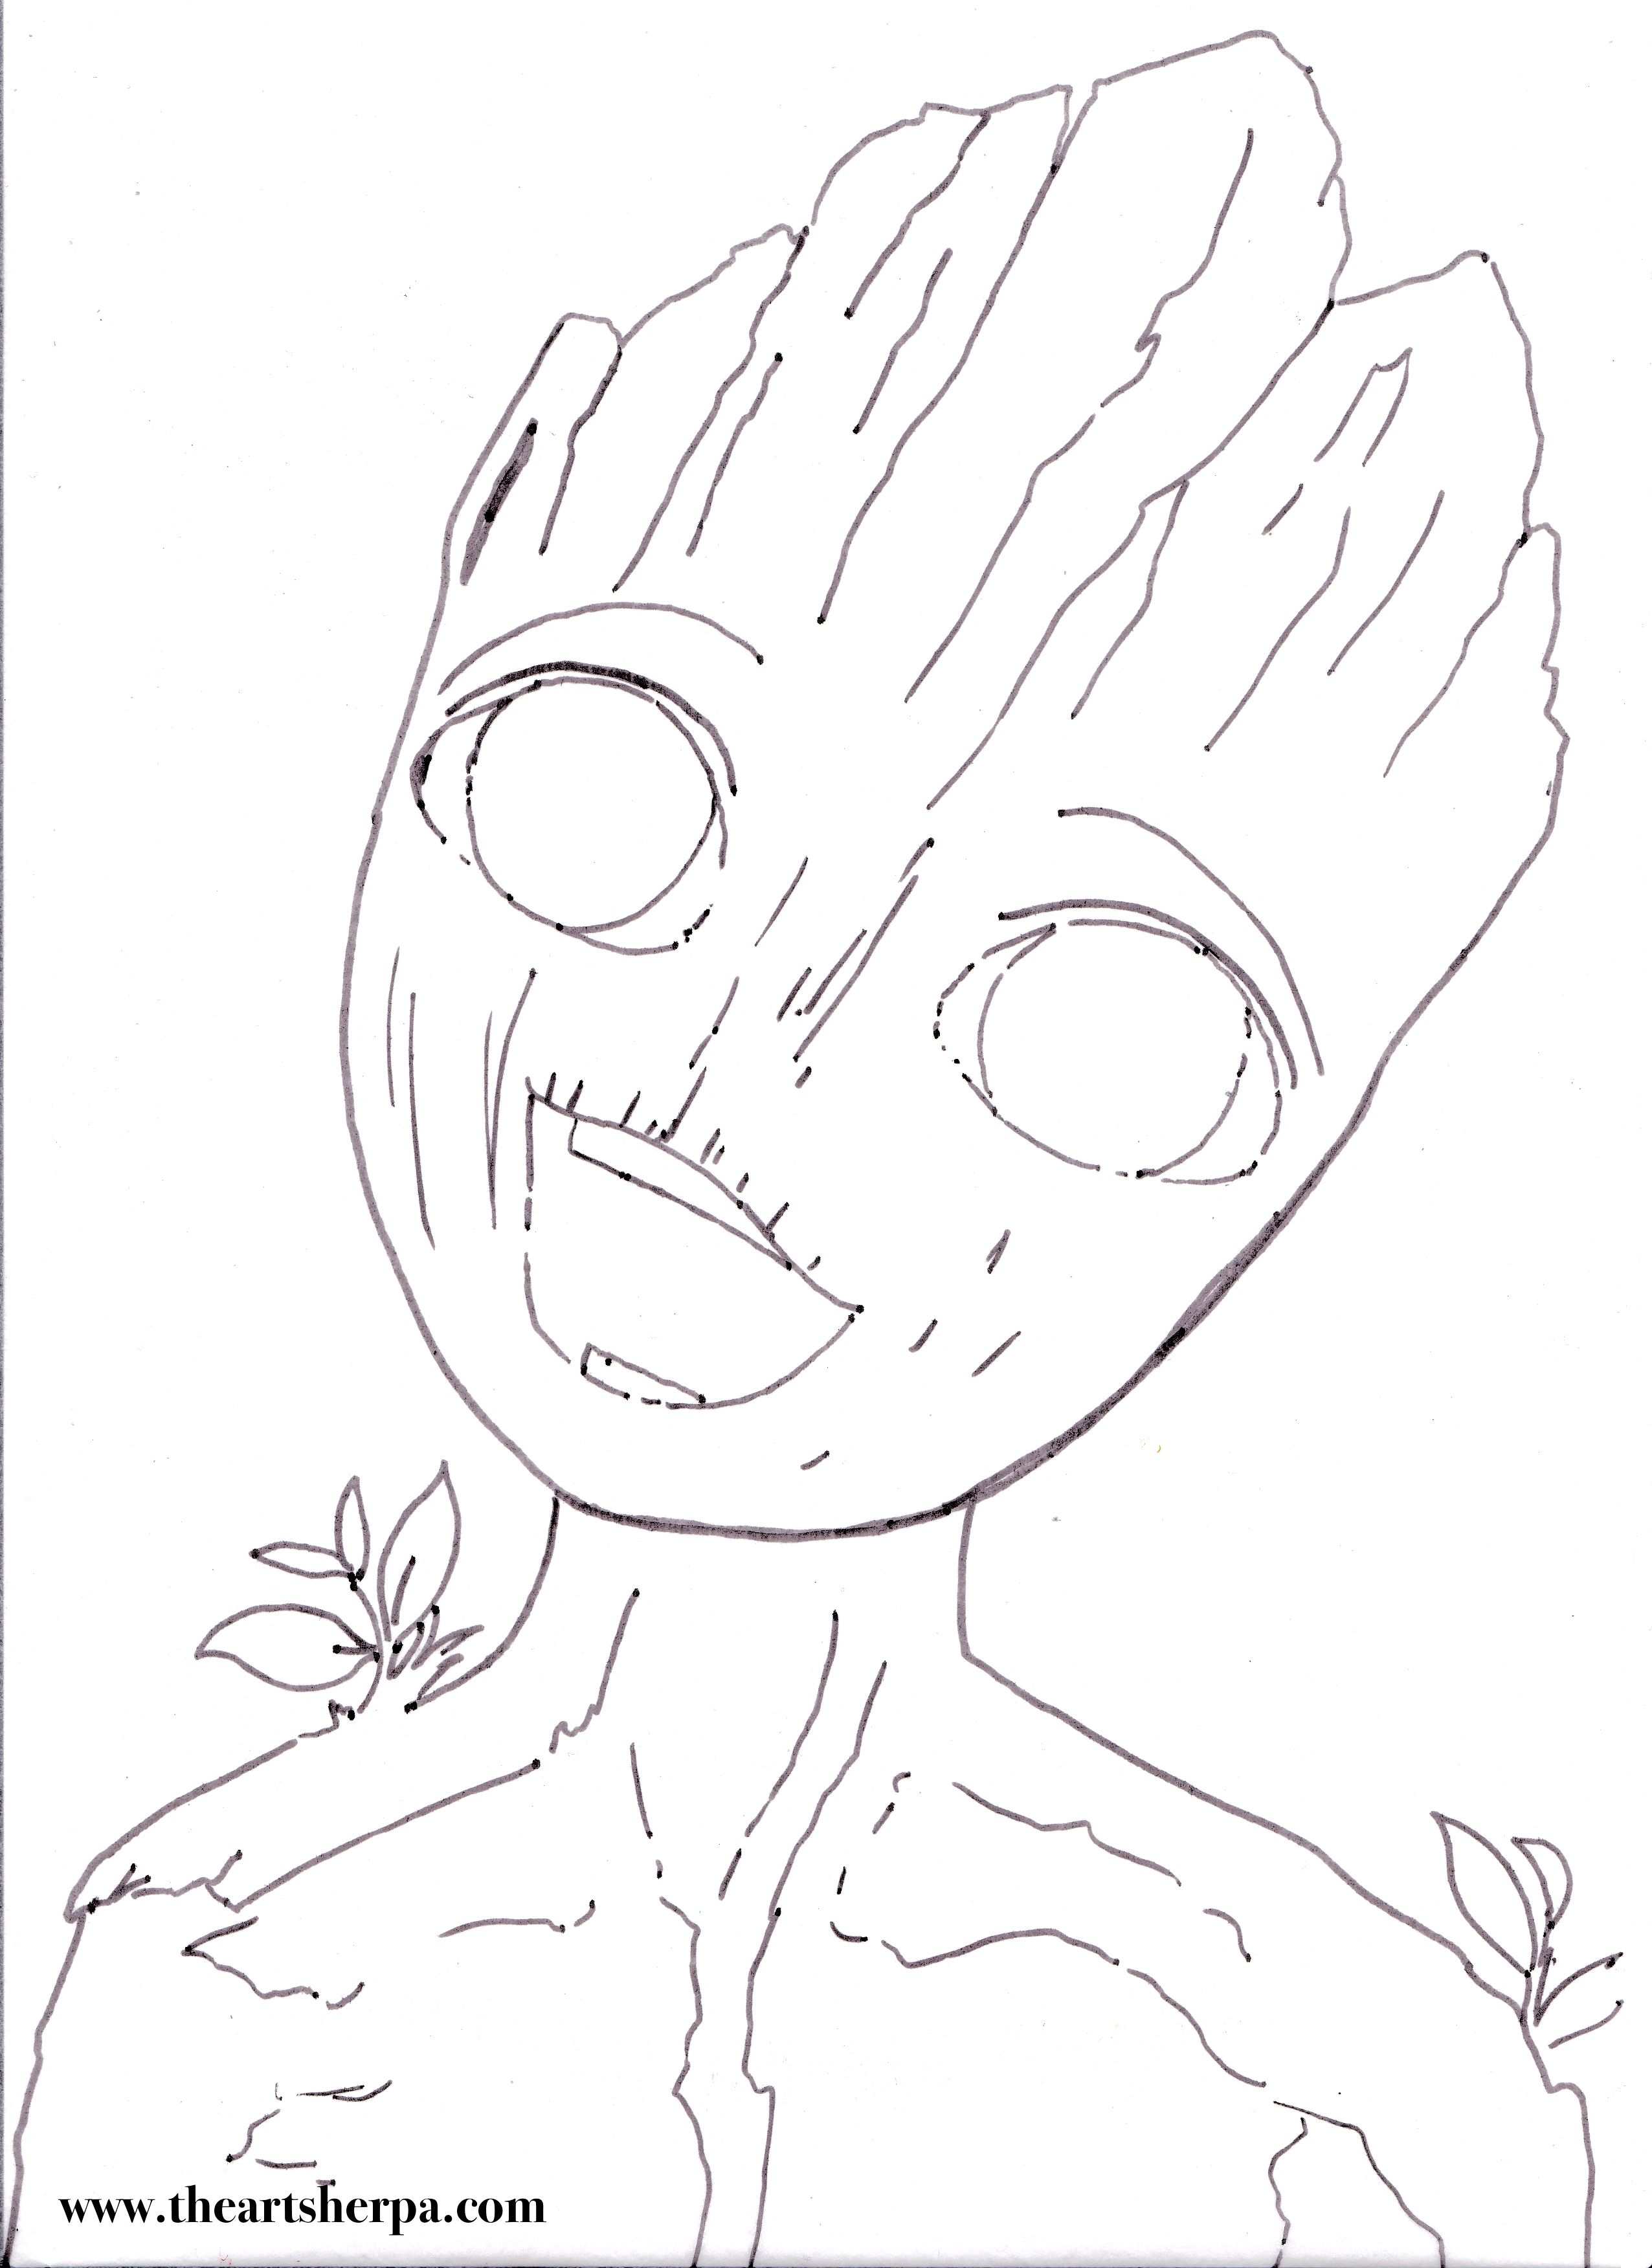 Coloring pages youtube - Coloring Pages I Am Groot Baby For The Youtube Acrylic Art Sherpa Tutorial Www Theartsherpa Com